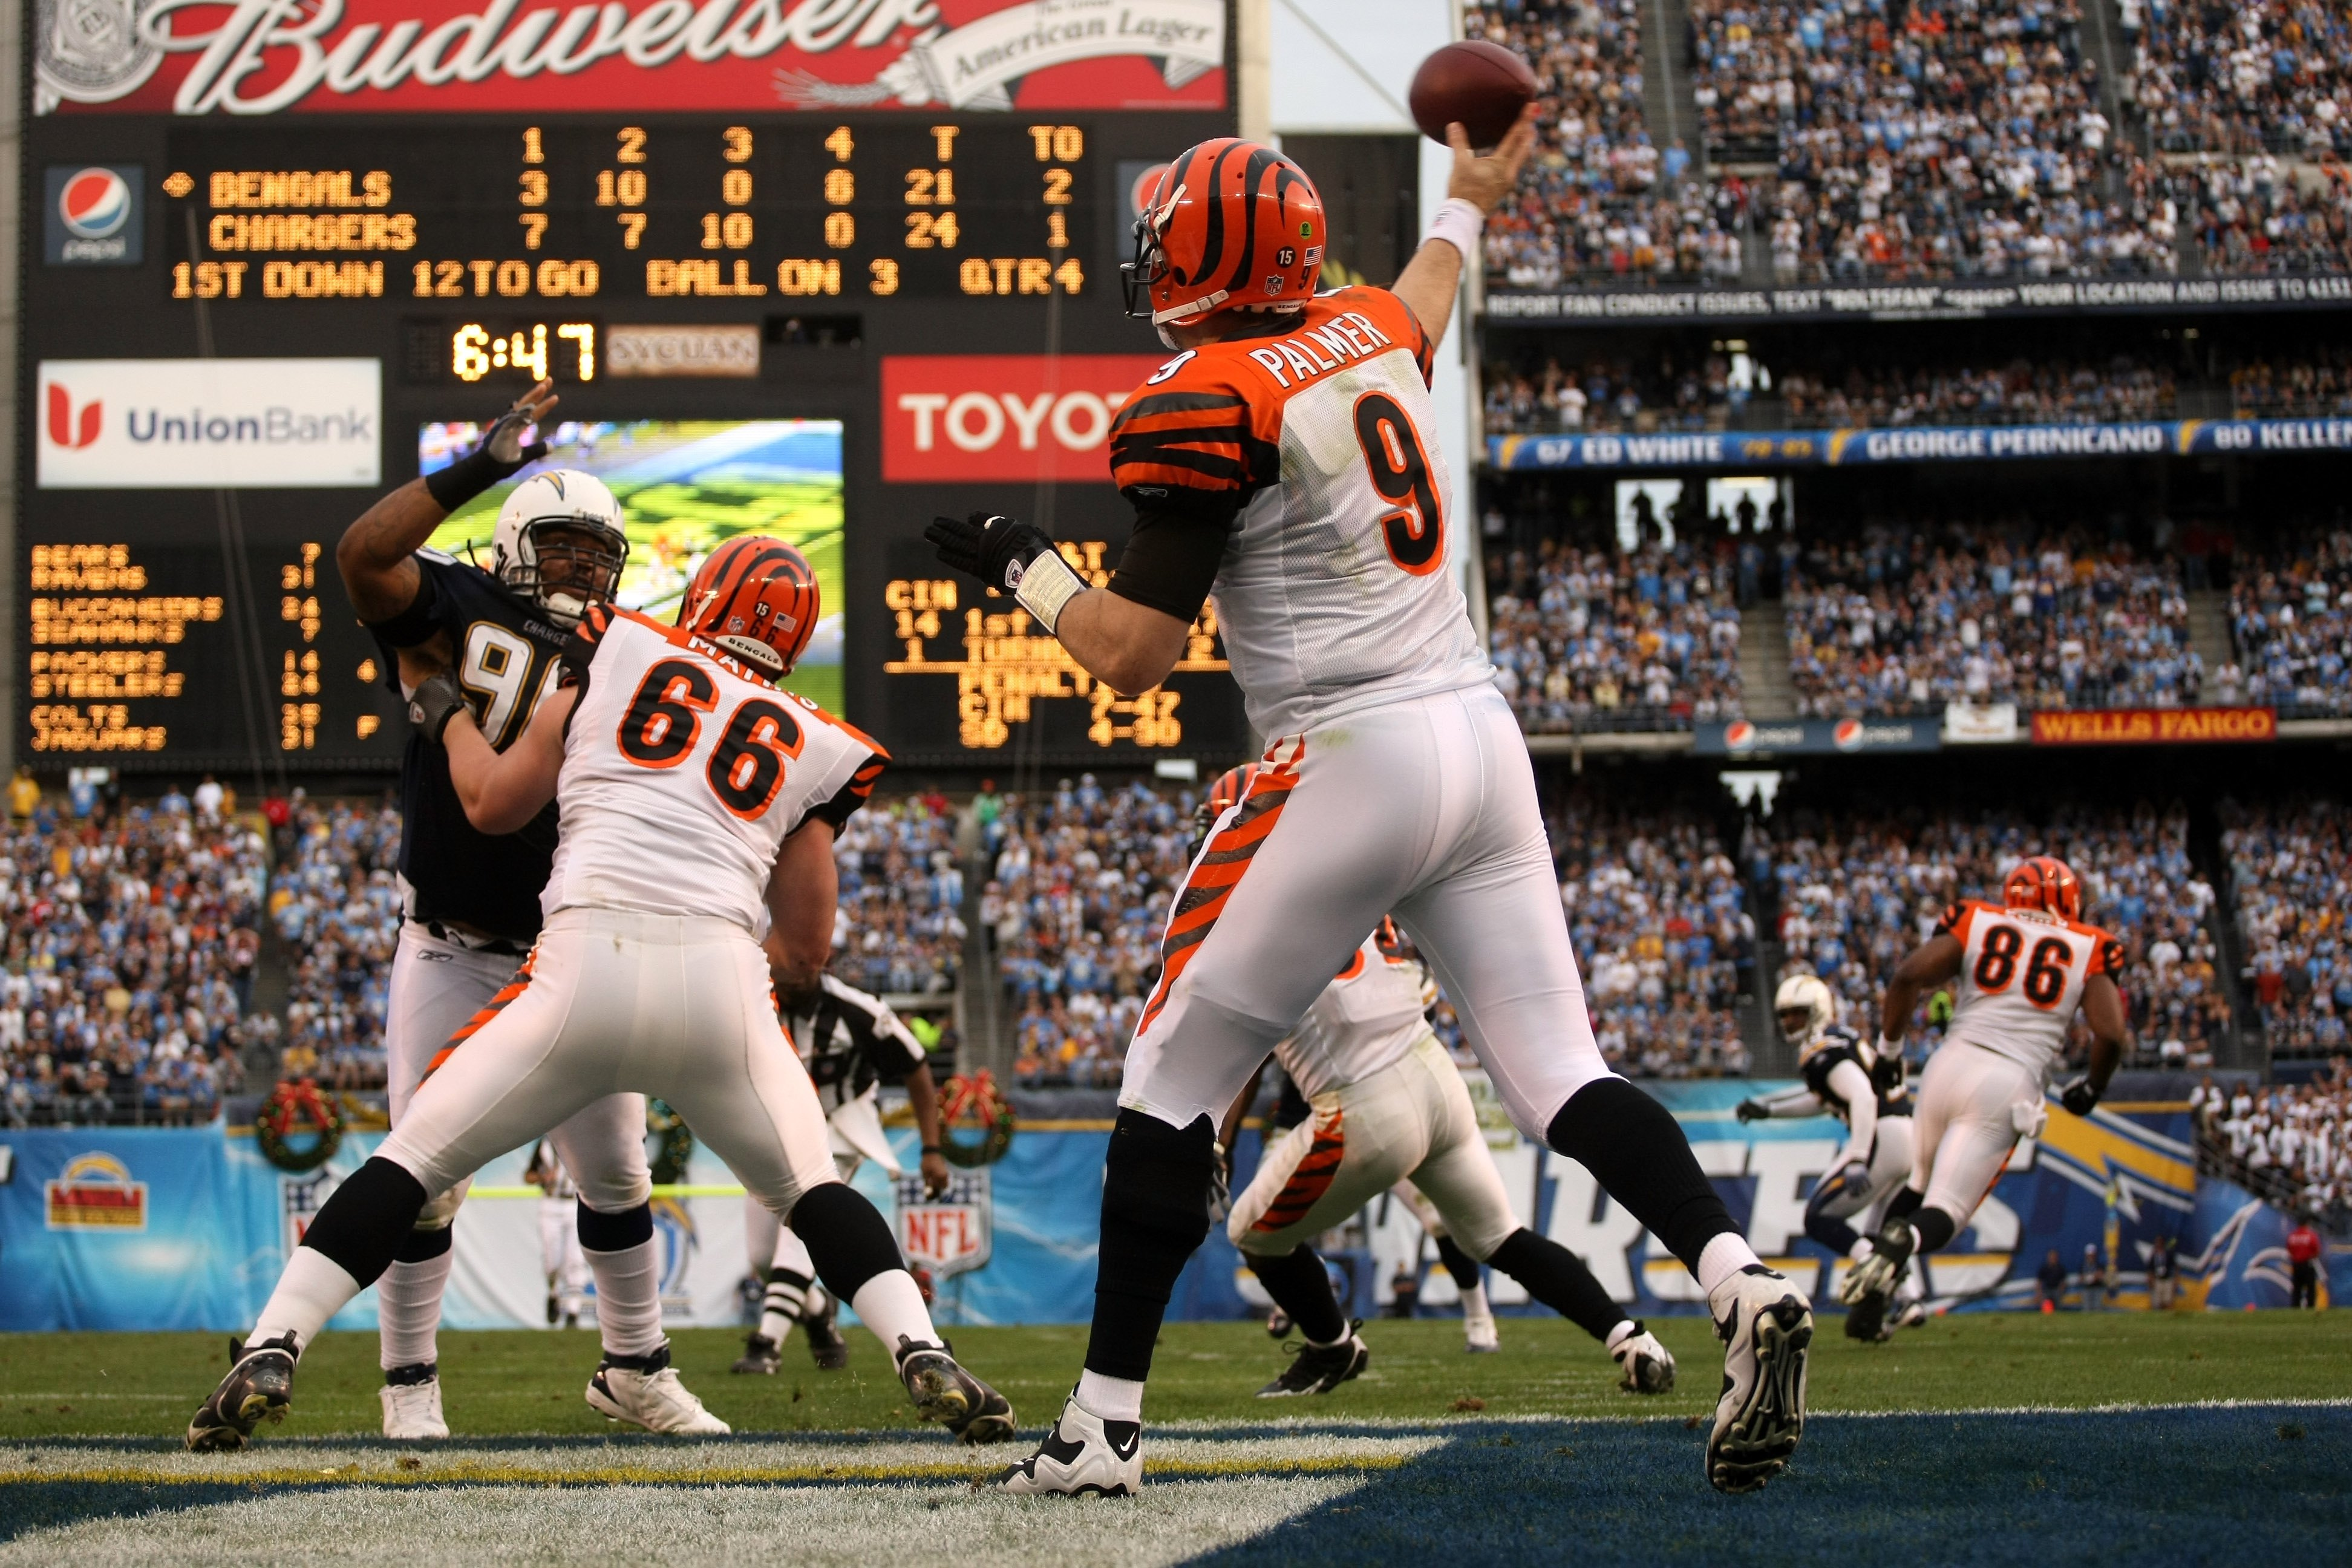 SAN DIEGO - DECEMBER 20:  Quarterback Carson Palmer #3 of the Cincinnati Bengals throws from the end zone against the San Diego Chargers on December 20, 2009 at Qualcomm Stadium in San Diego, California.  The Chargers won 27-24.  (Photo by Stephen Dunn/Ge